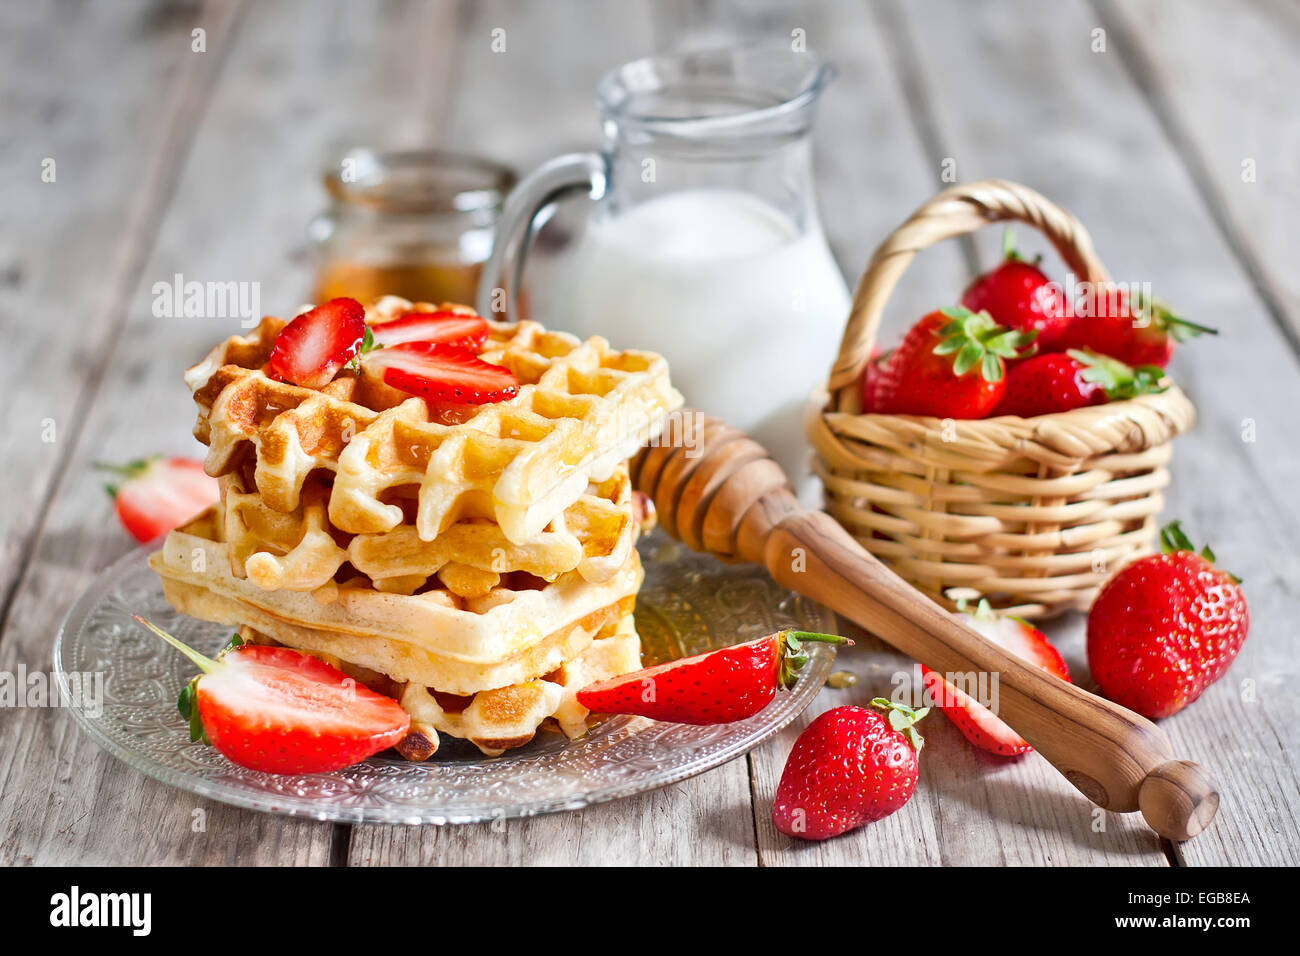 Homemade belgian waffles with ripe strawberry, honey and milk on wooden background - Stock Image